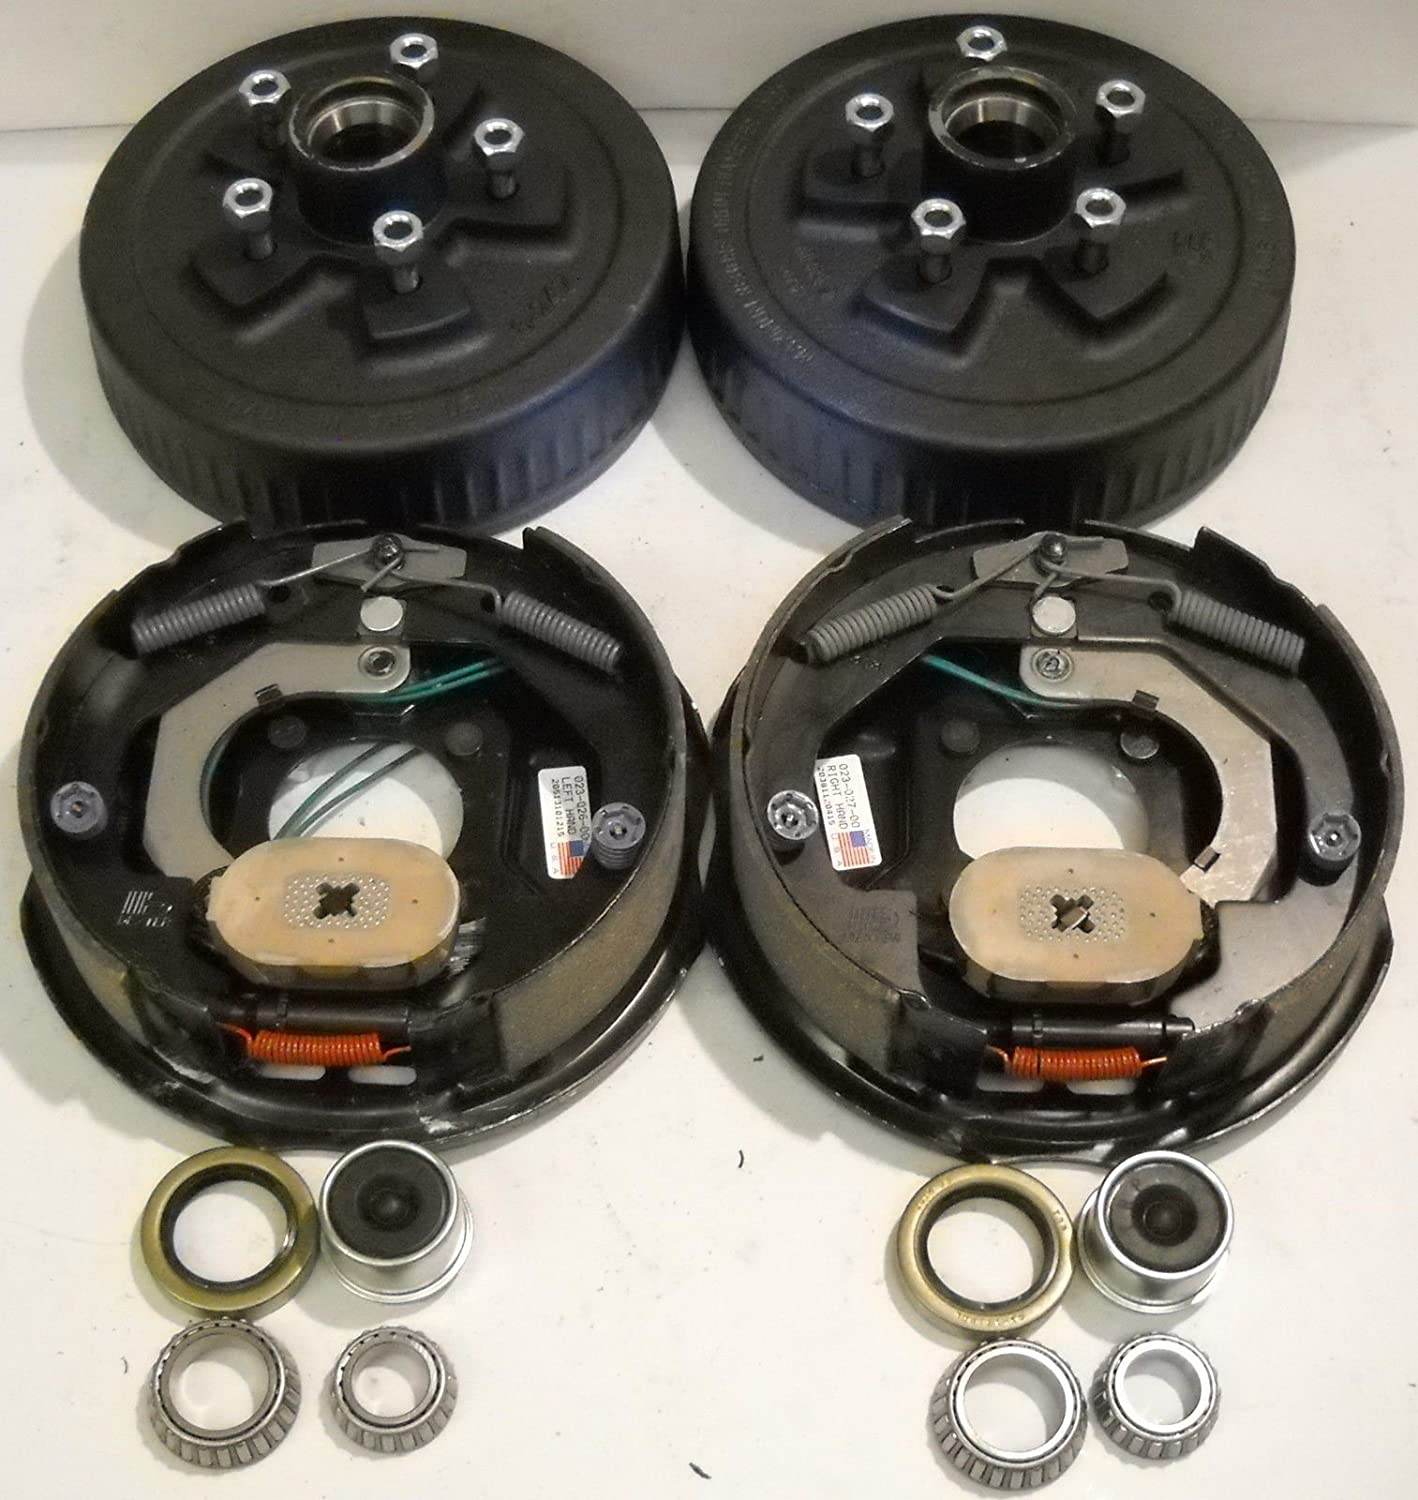 Genuine Dexter 3500# Add Brakes to Your Trailer Basic Kit 5 x 4.5 with Backing Plates & Drums